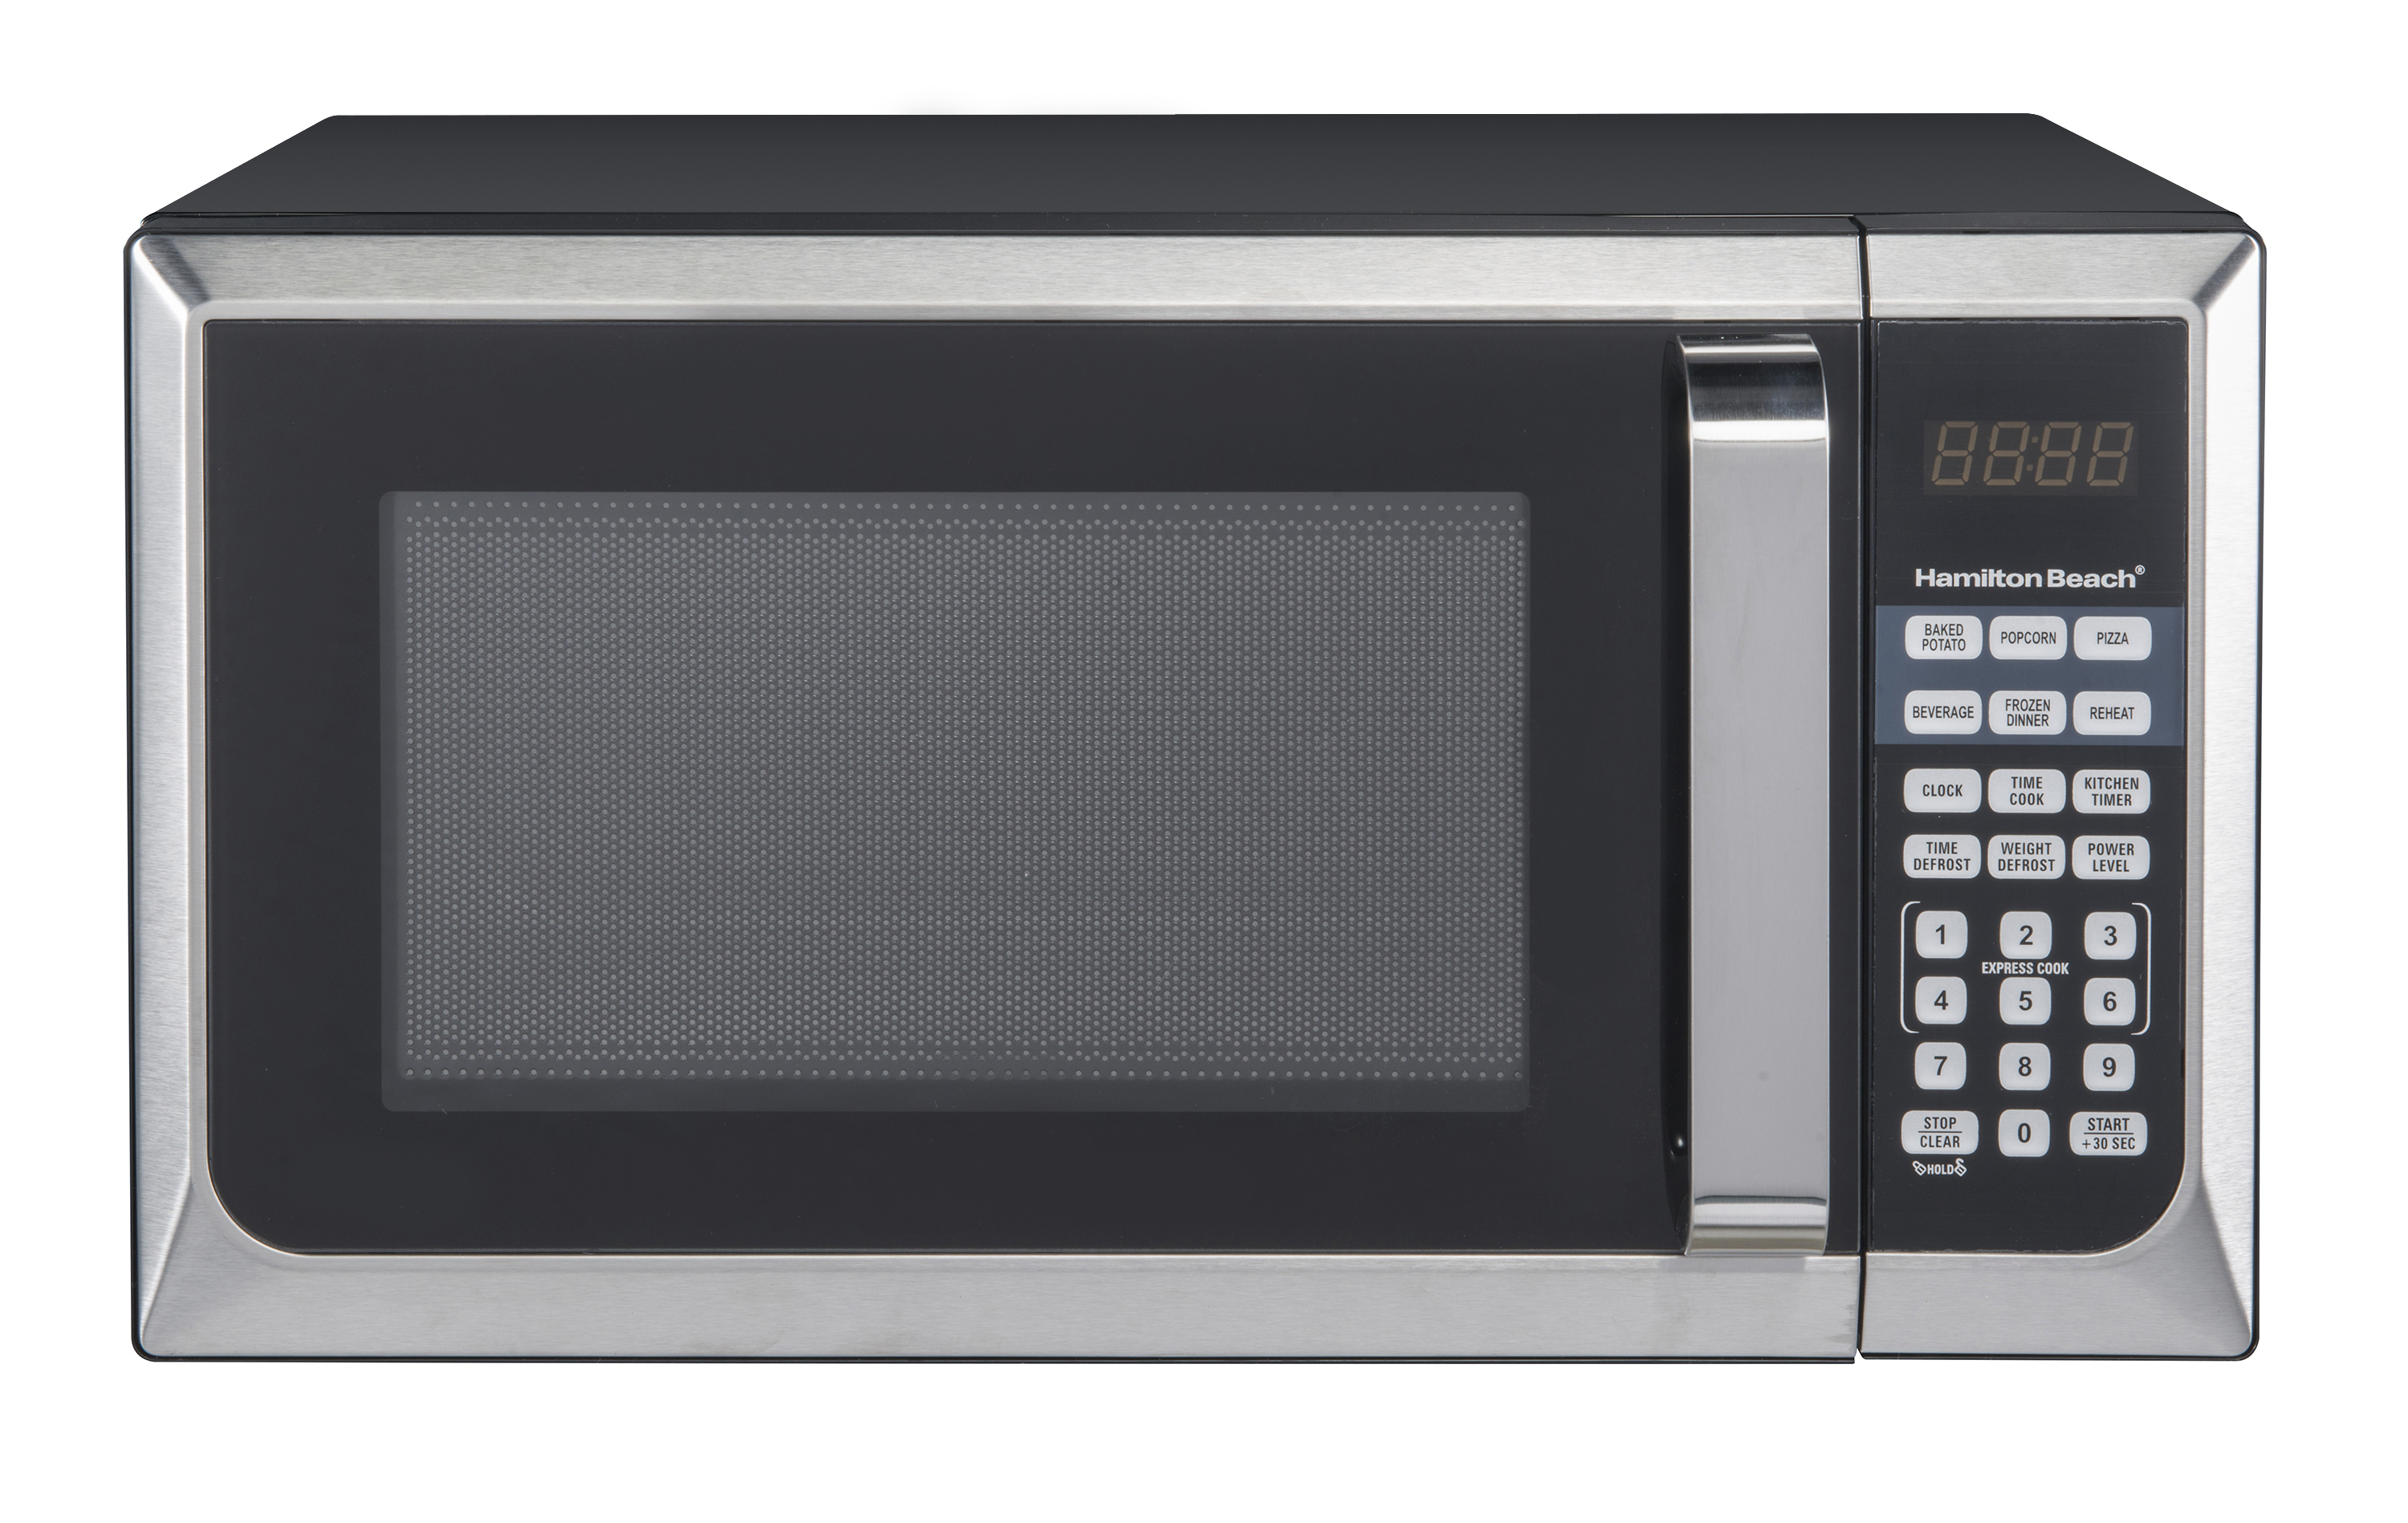 Walmart Microwave Ovens All